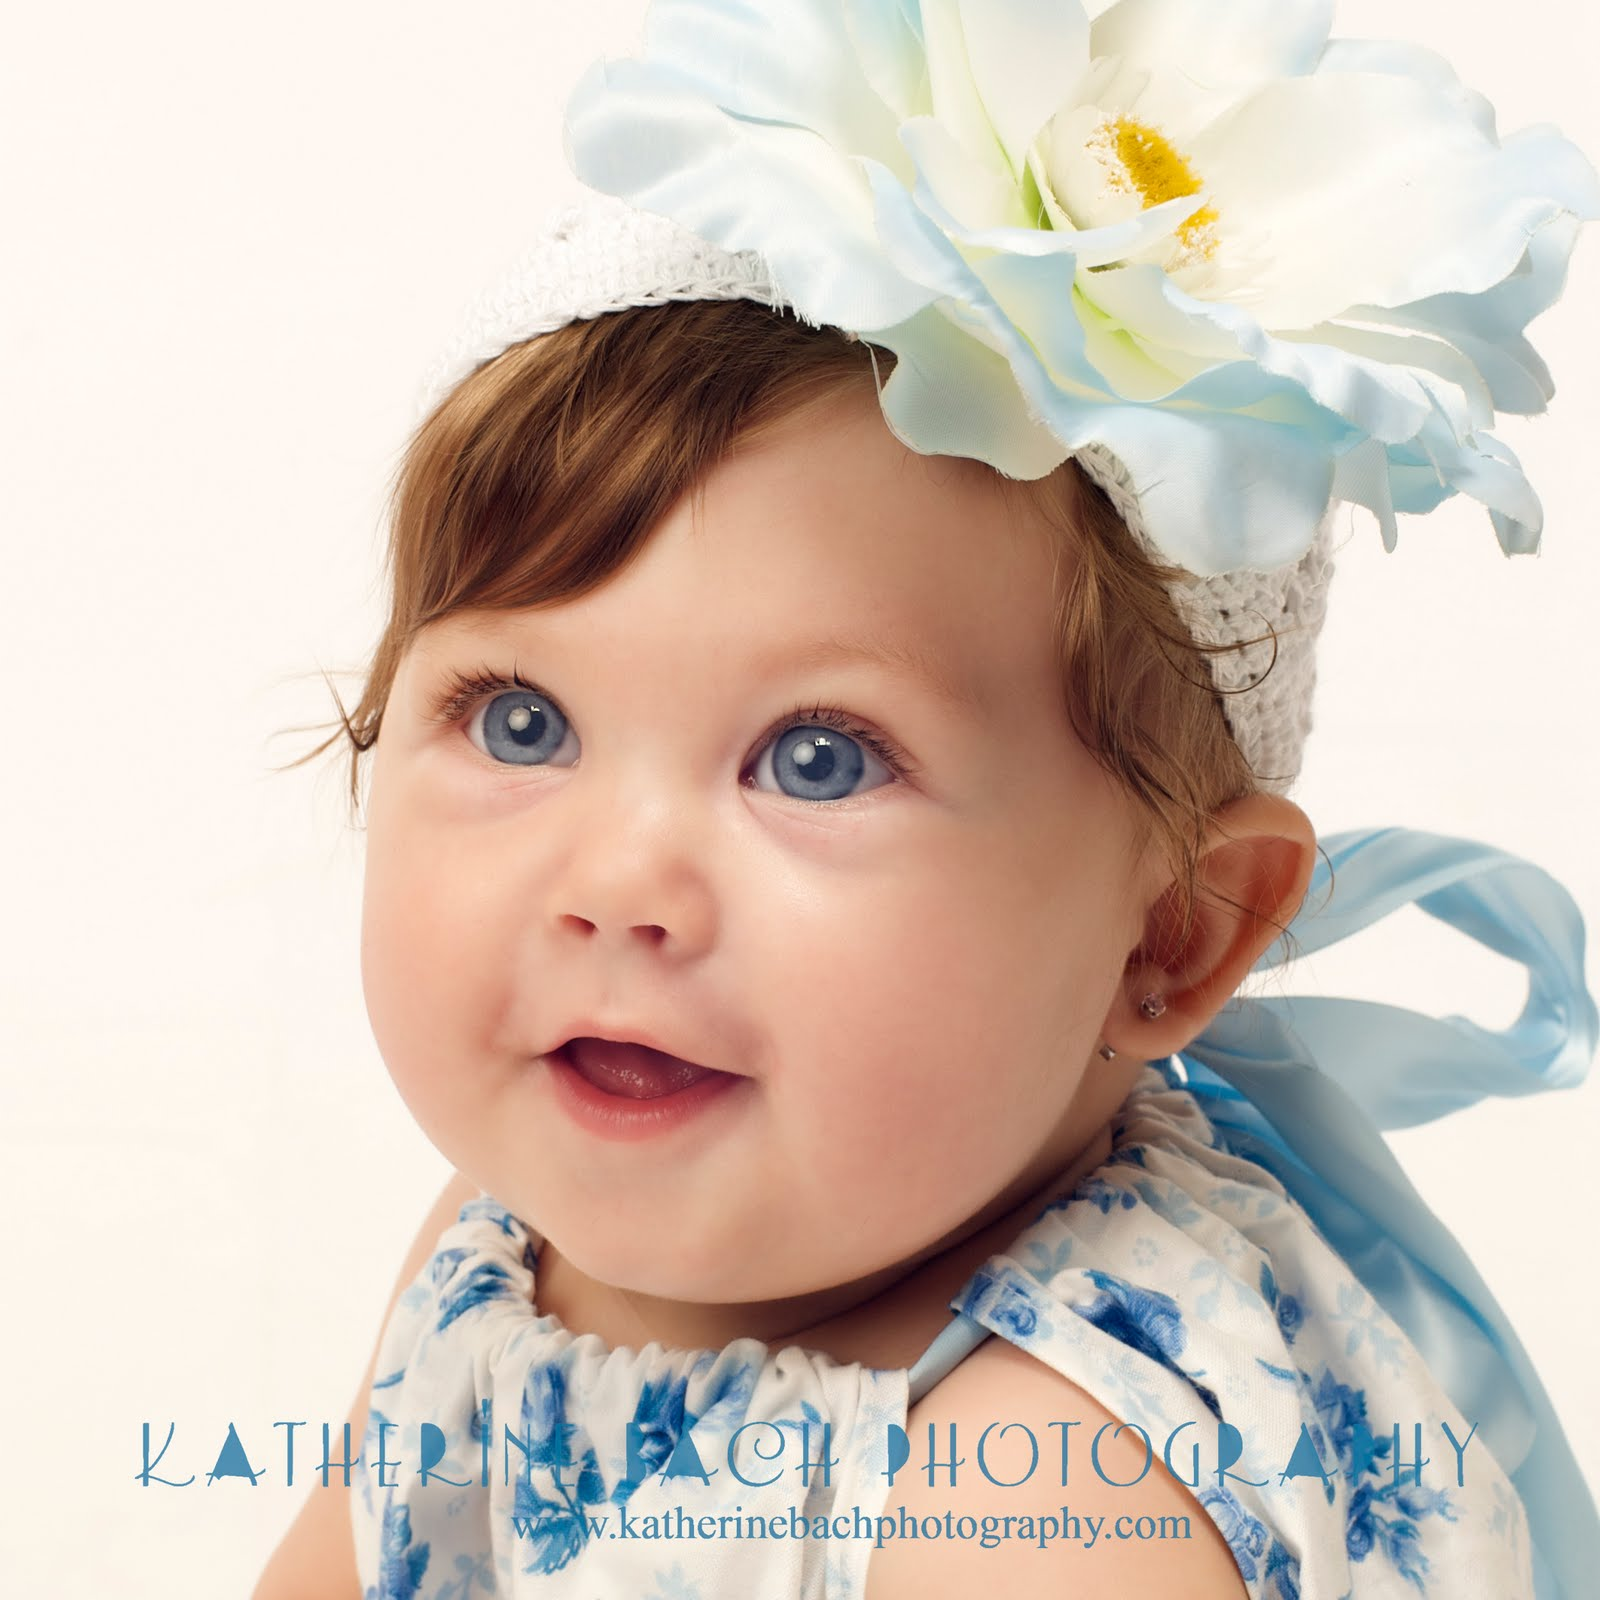 Katherine Bach Photography: Baby Harper- Look at this ...